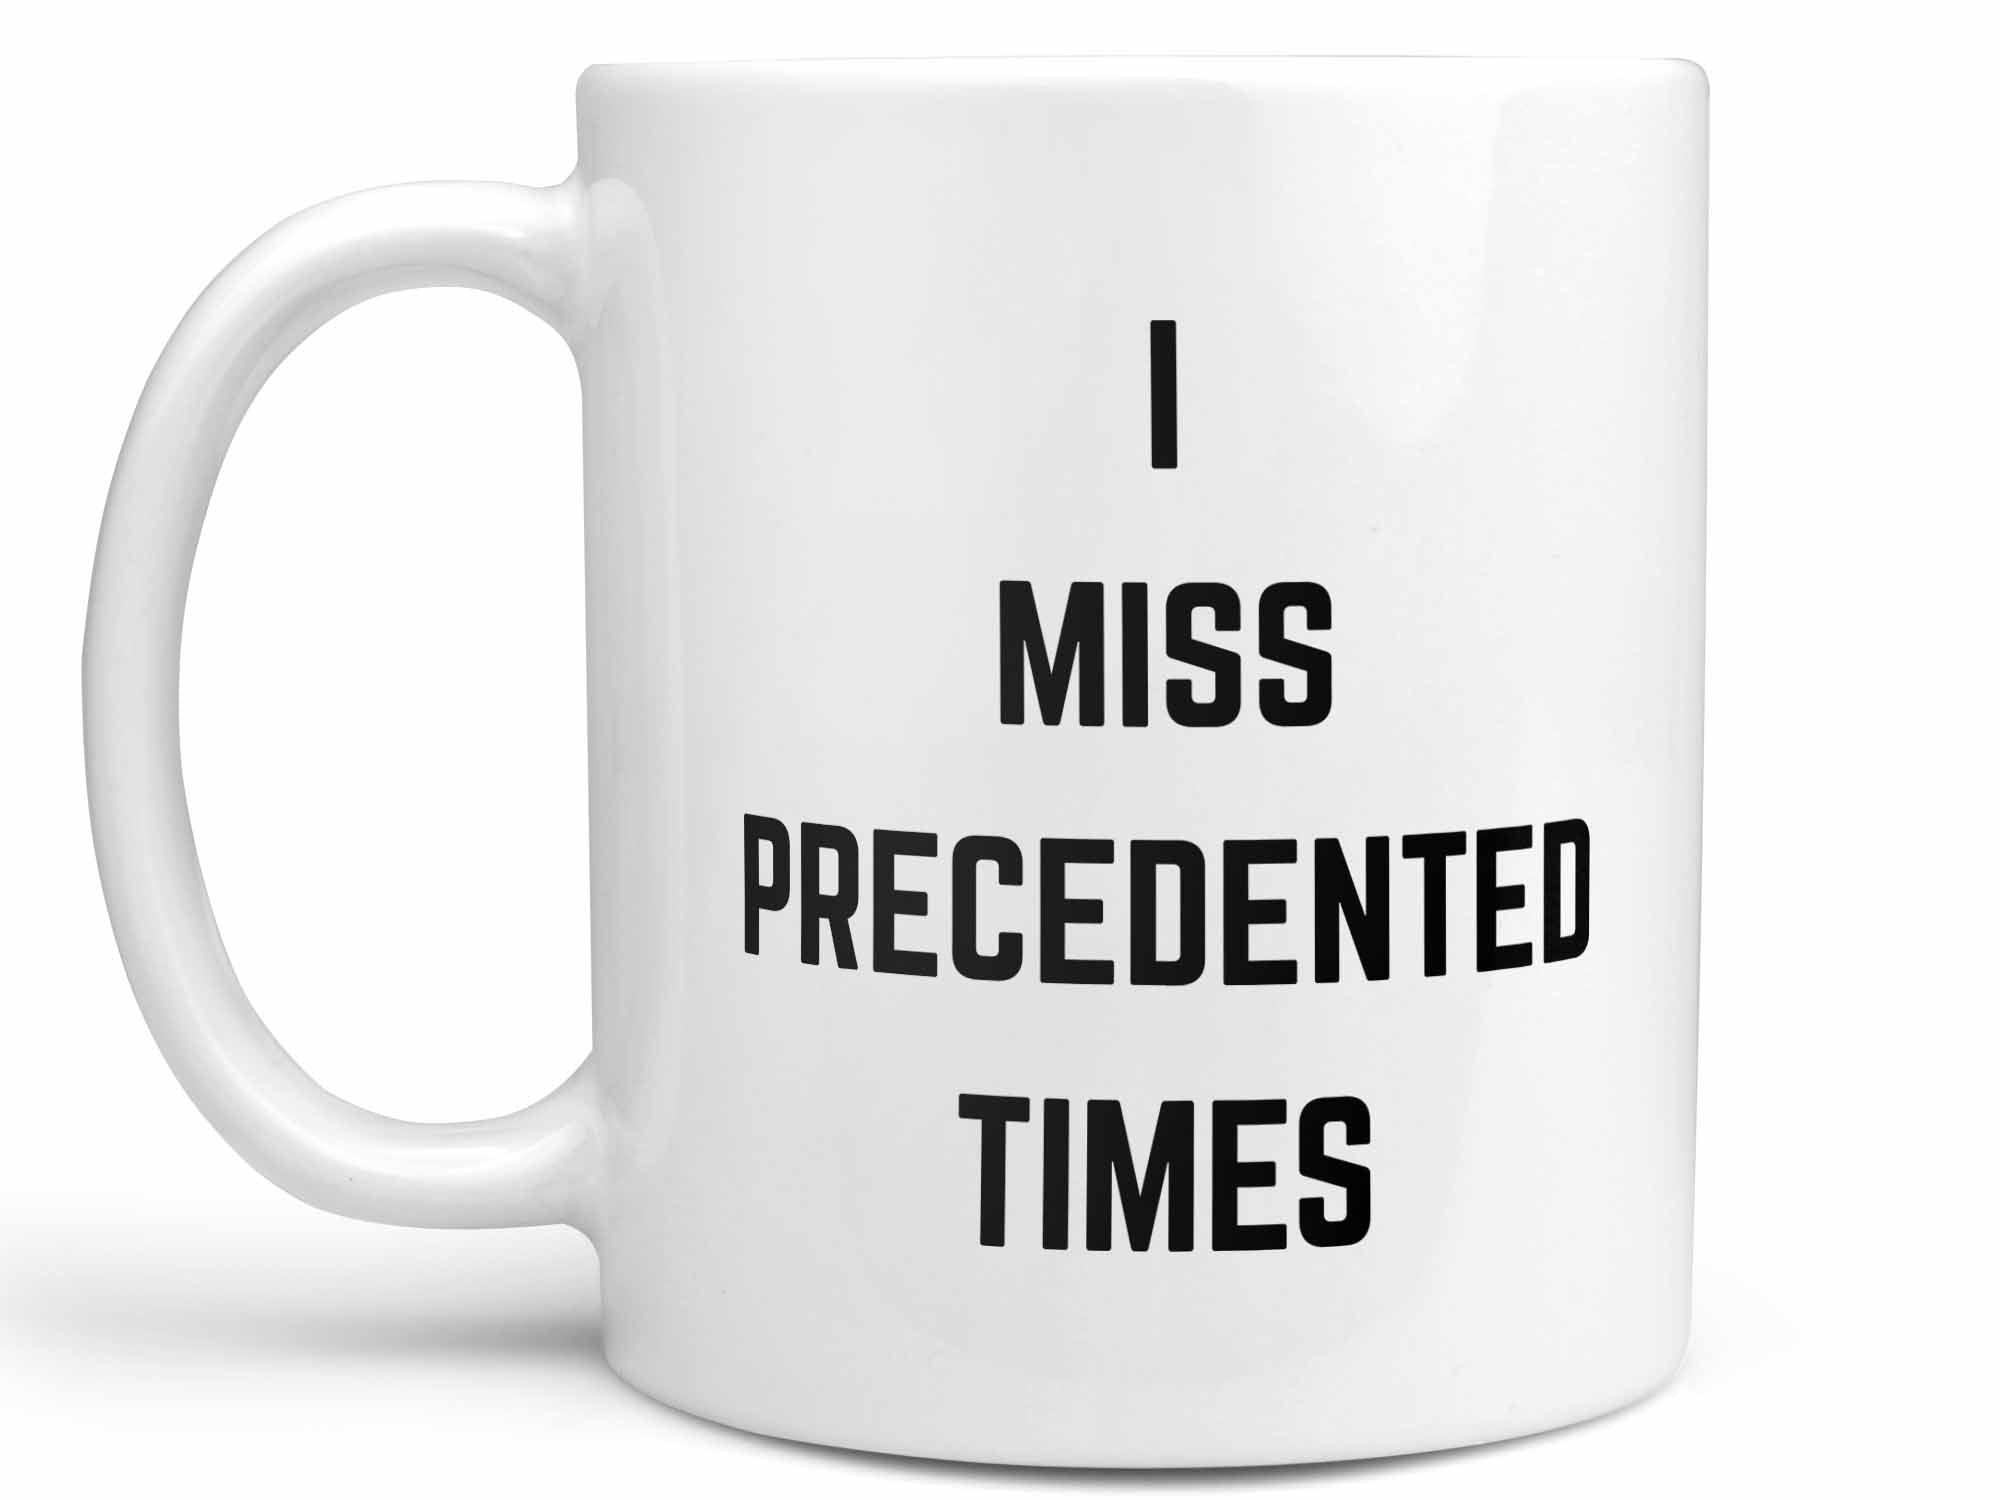 Precedented Times Coffee Mug